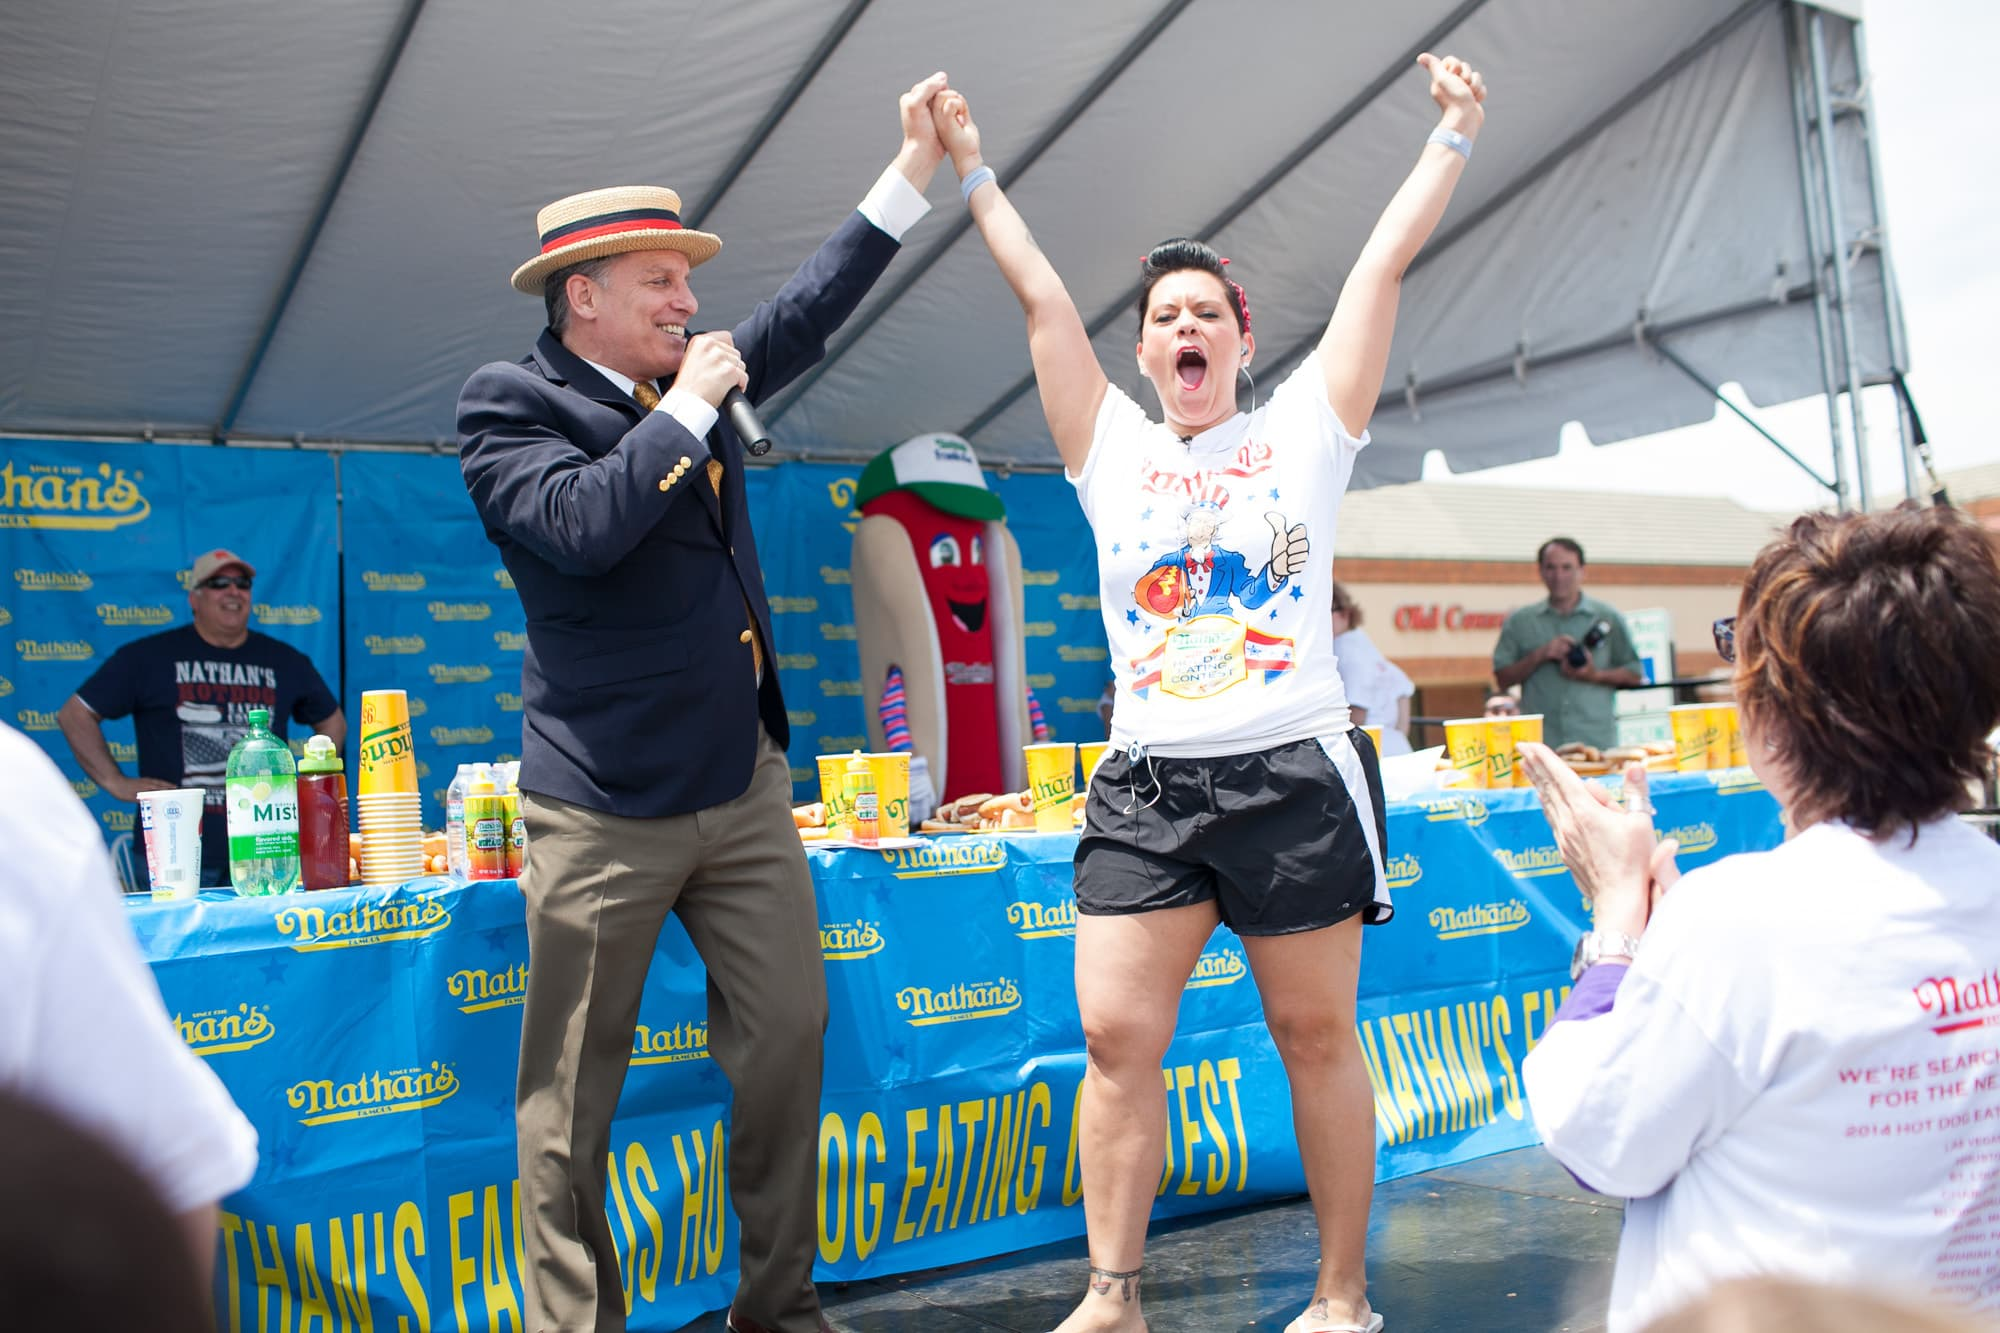 Nikki Rodriguez introduced at the hot dog eating contest at the Bloomingdale, Illinois, Kmart